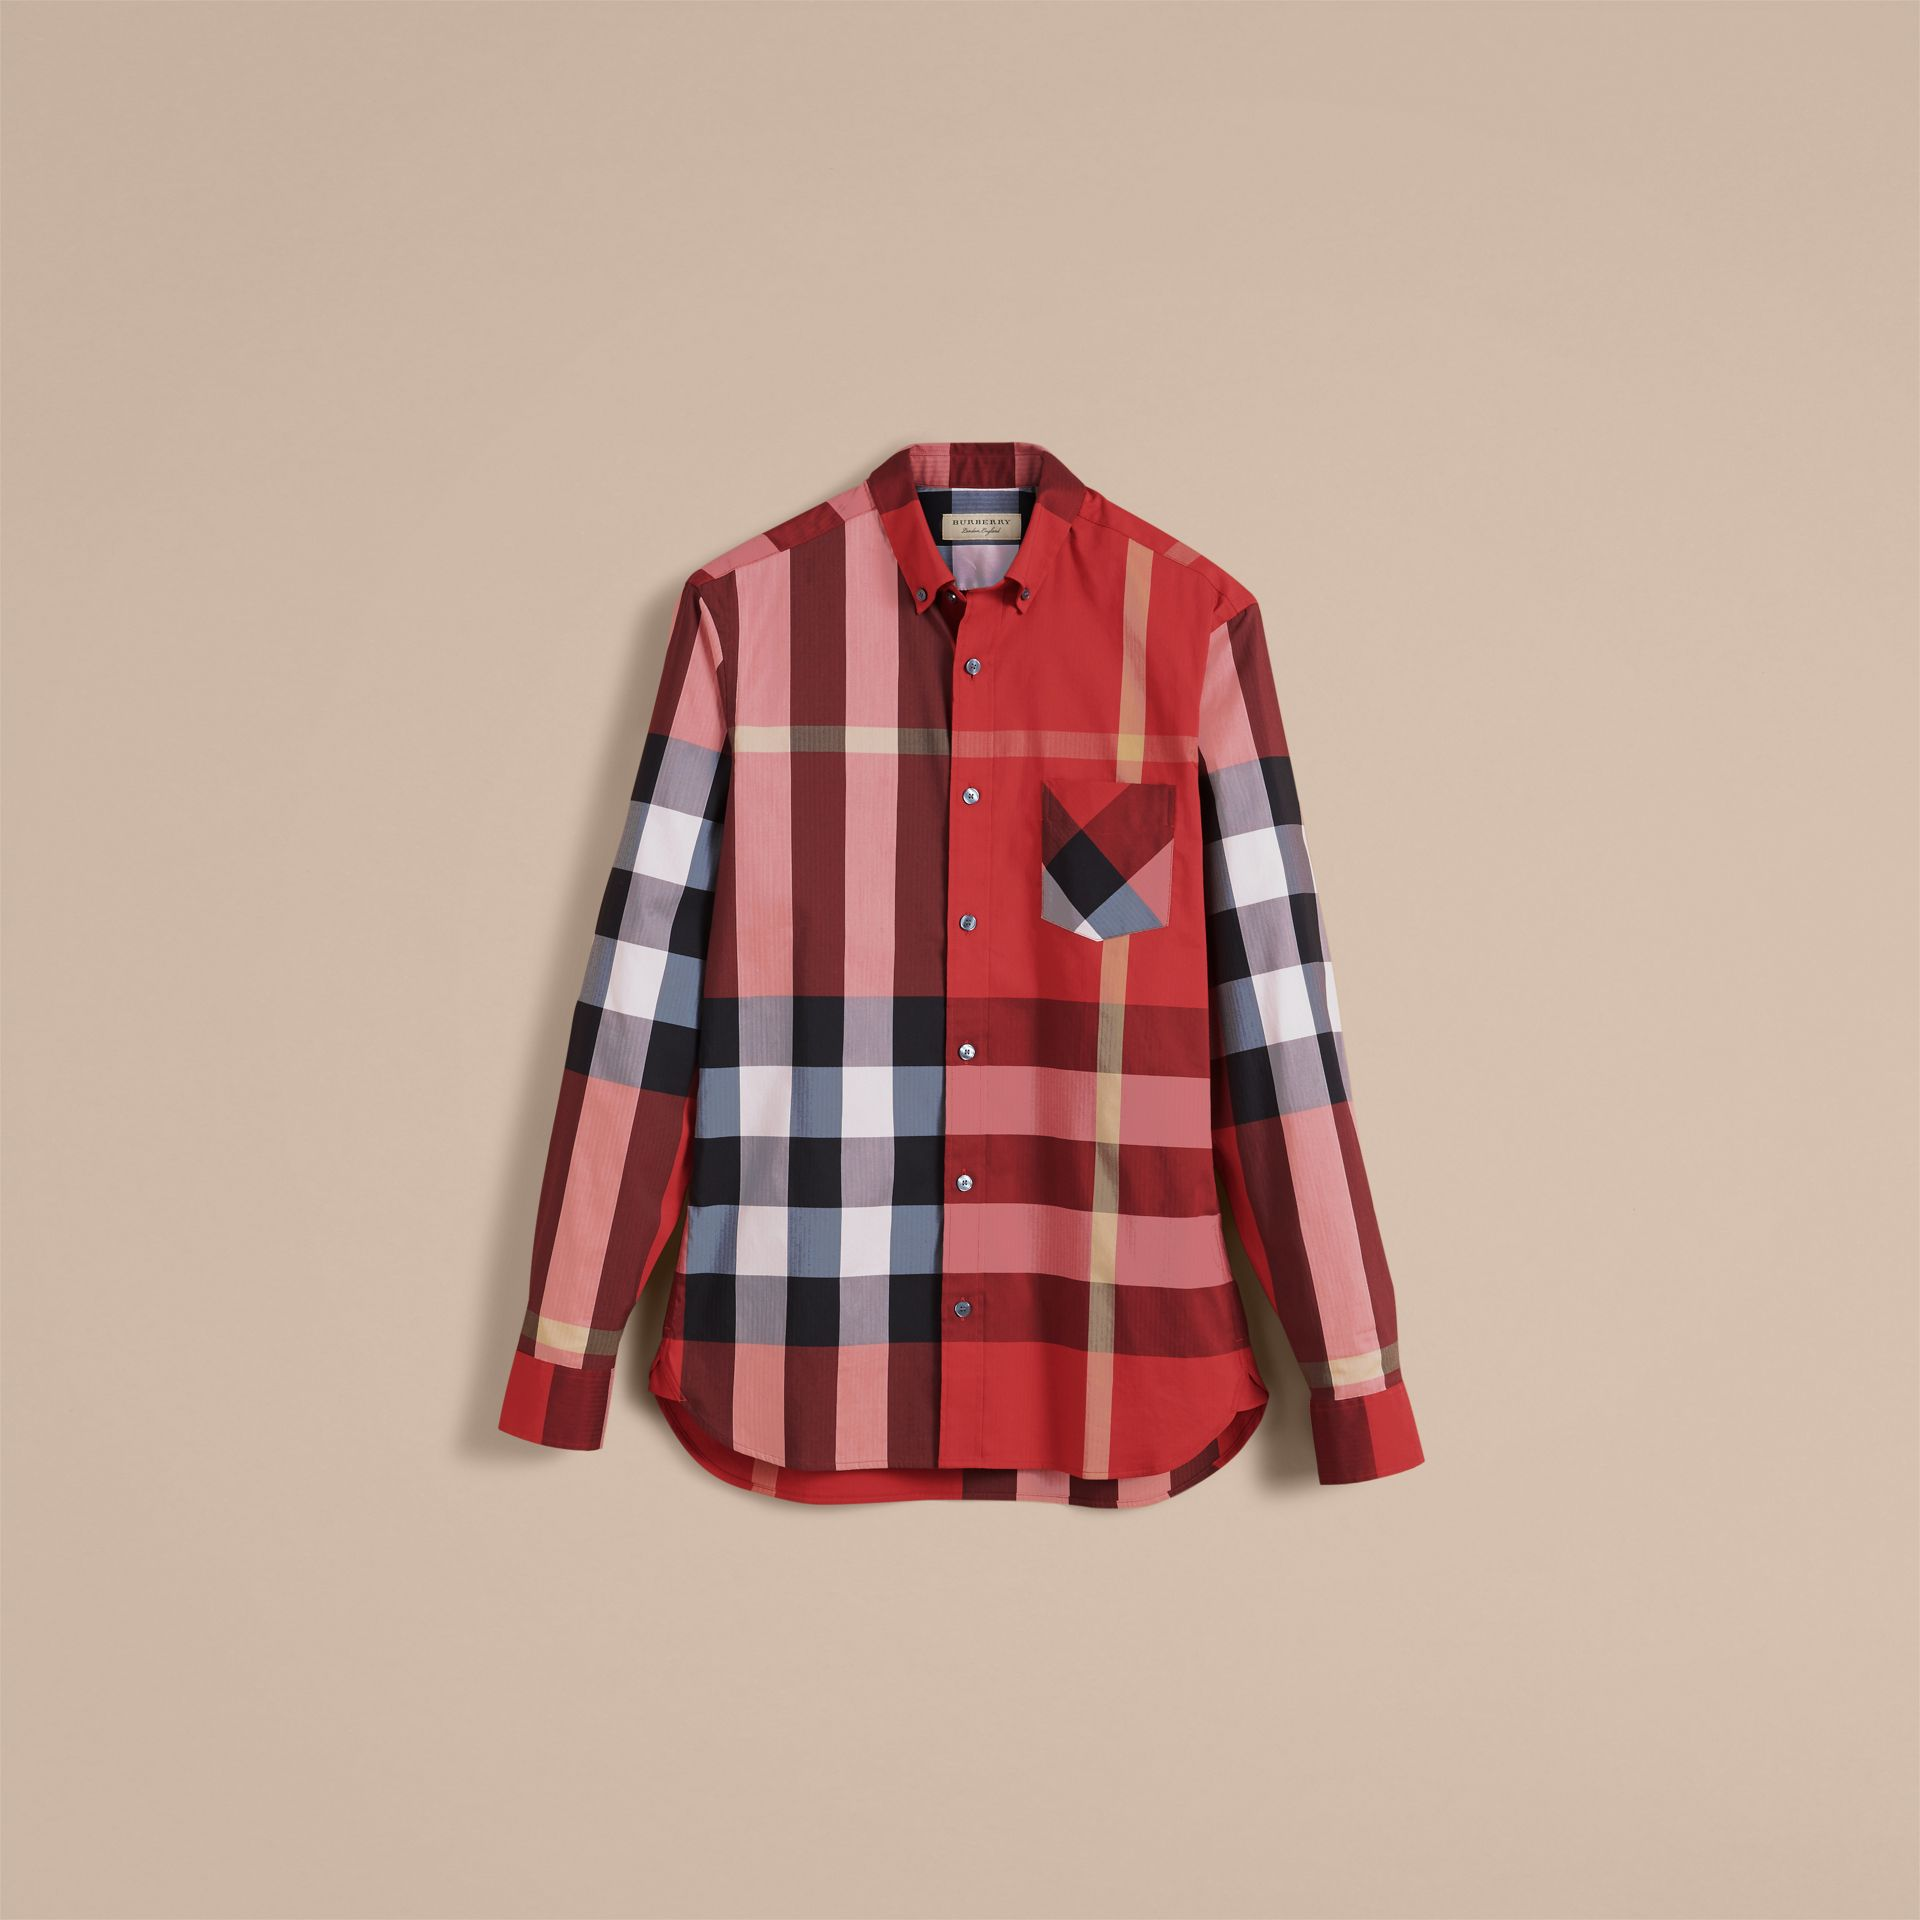 Button-down Collar Check Stretch Cotton Blend Shirt in Parade Red - Men | Burberry Australia - gallery image 4